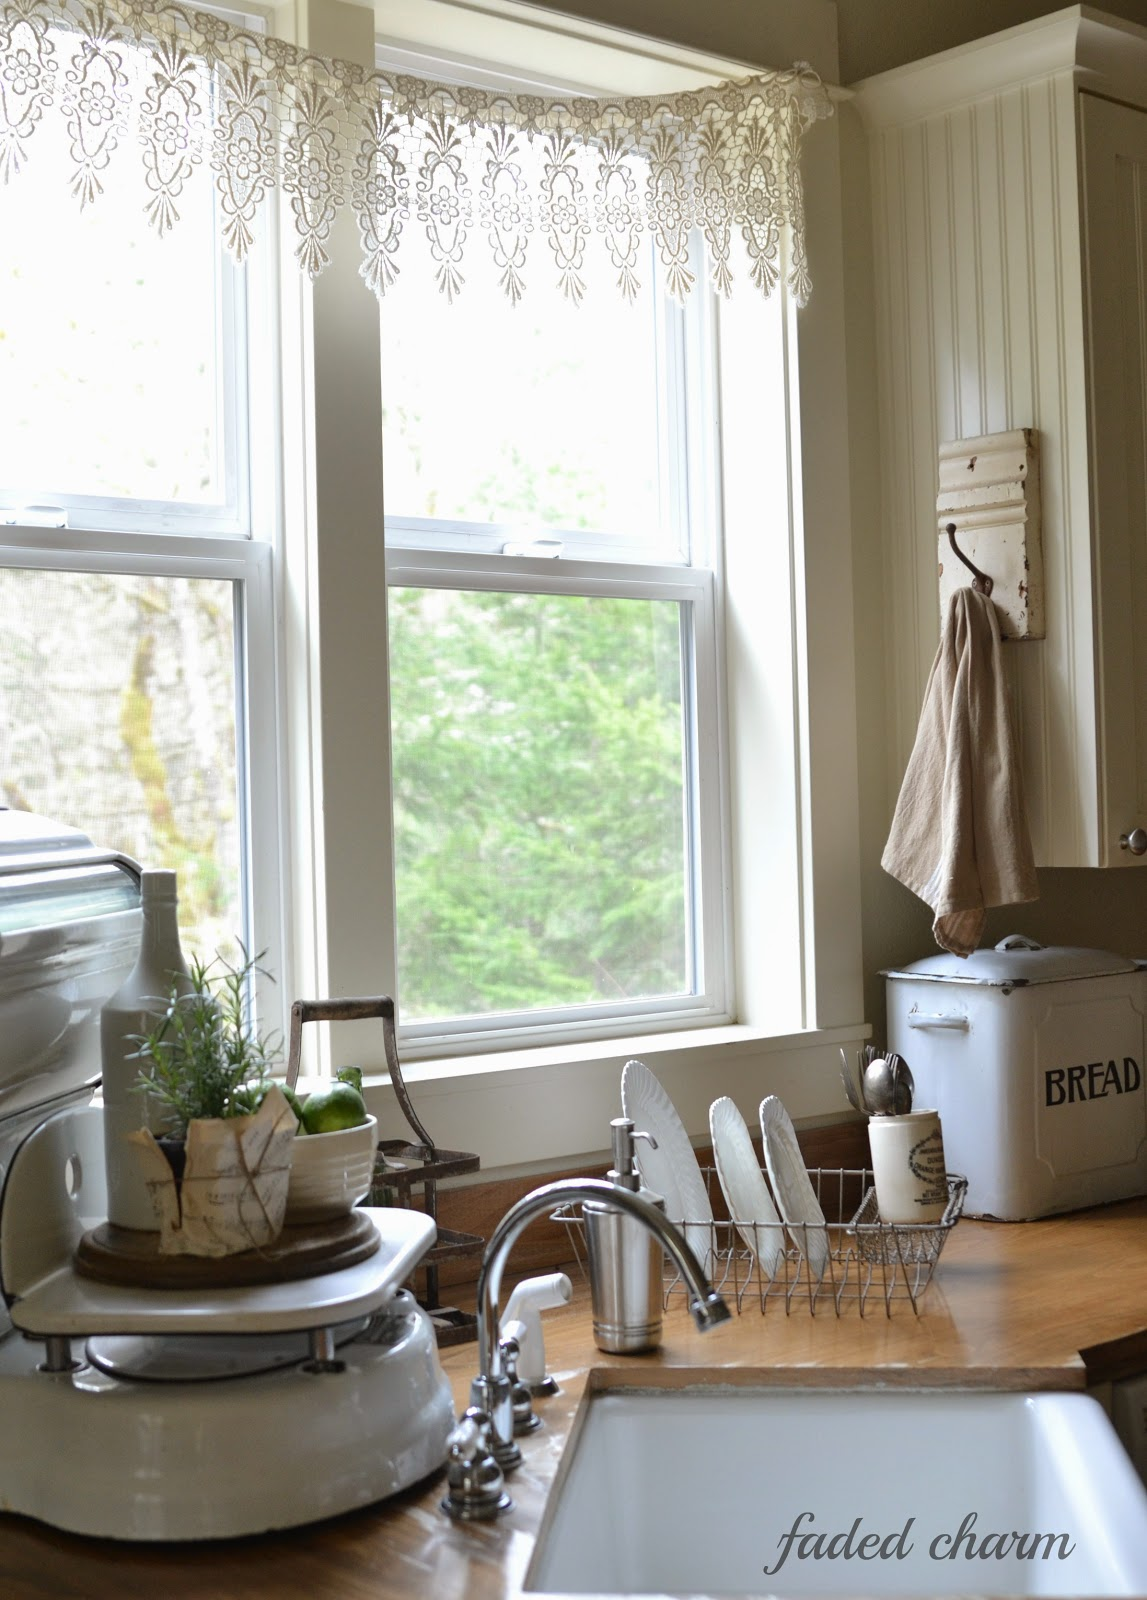 Salvaged Kitchen Decorating Ideas, From Crates To